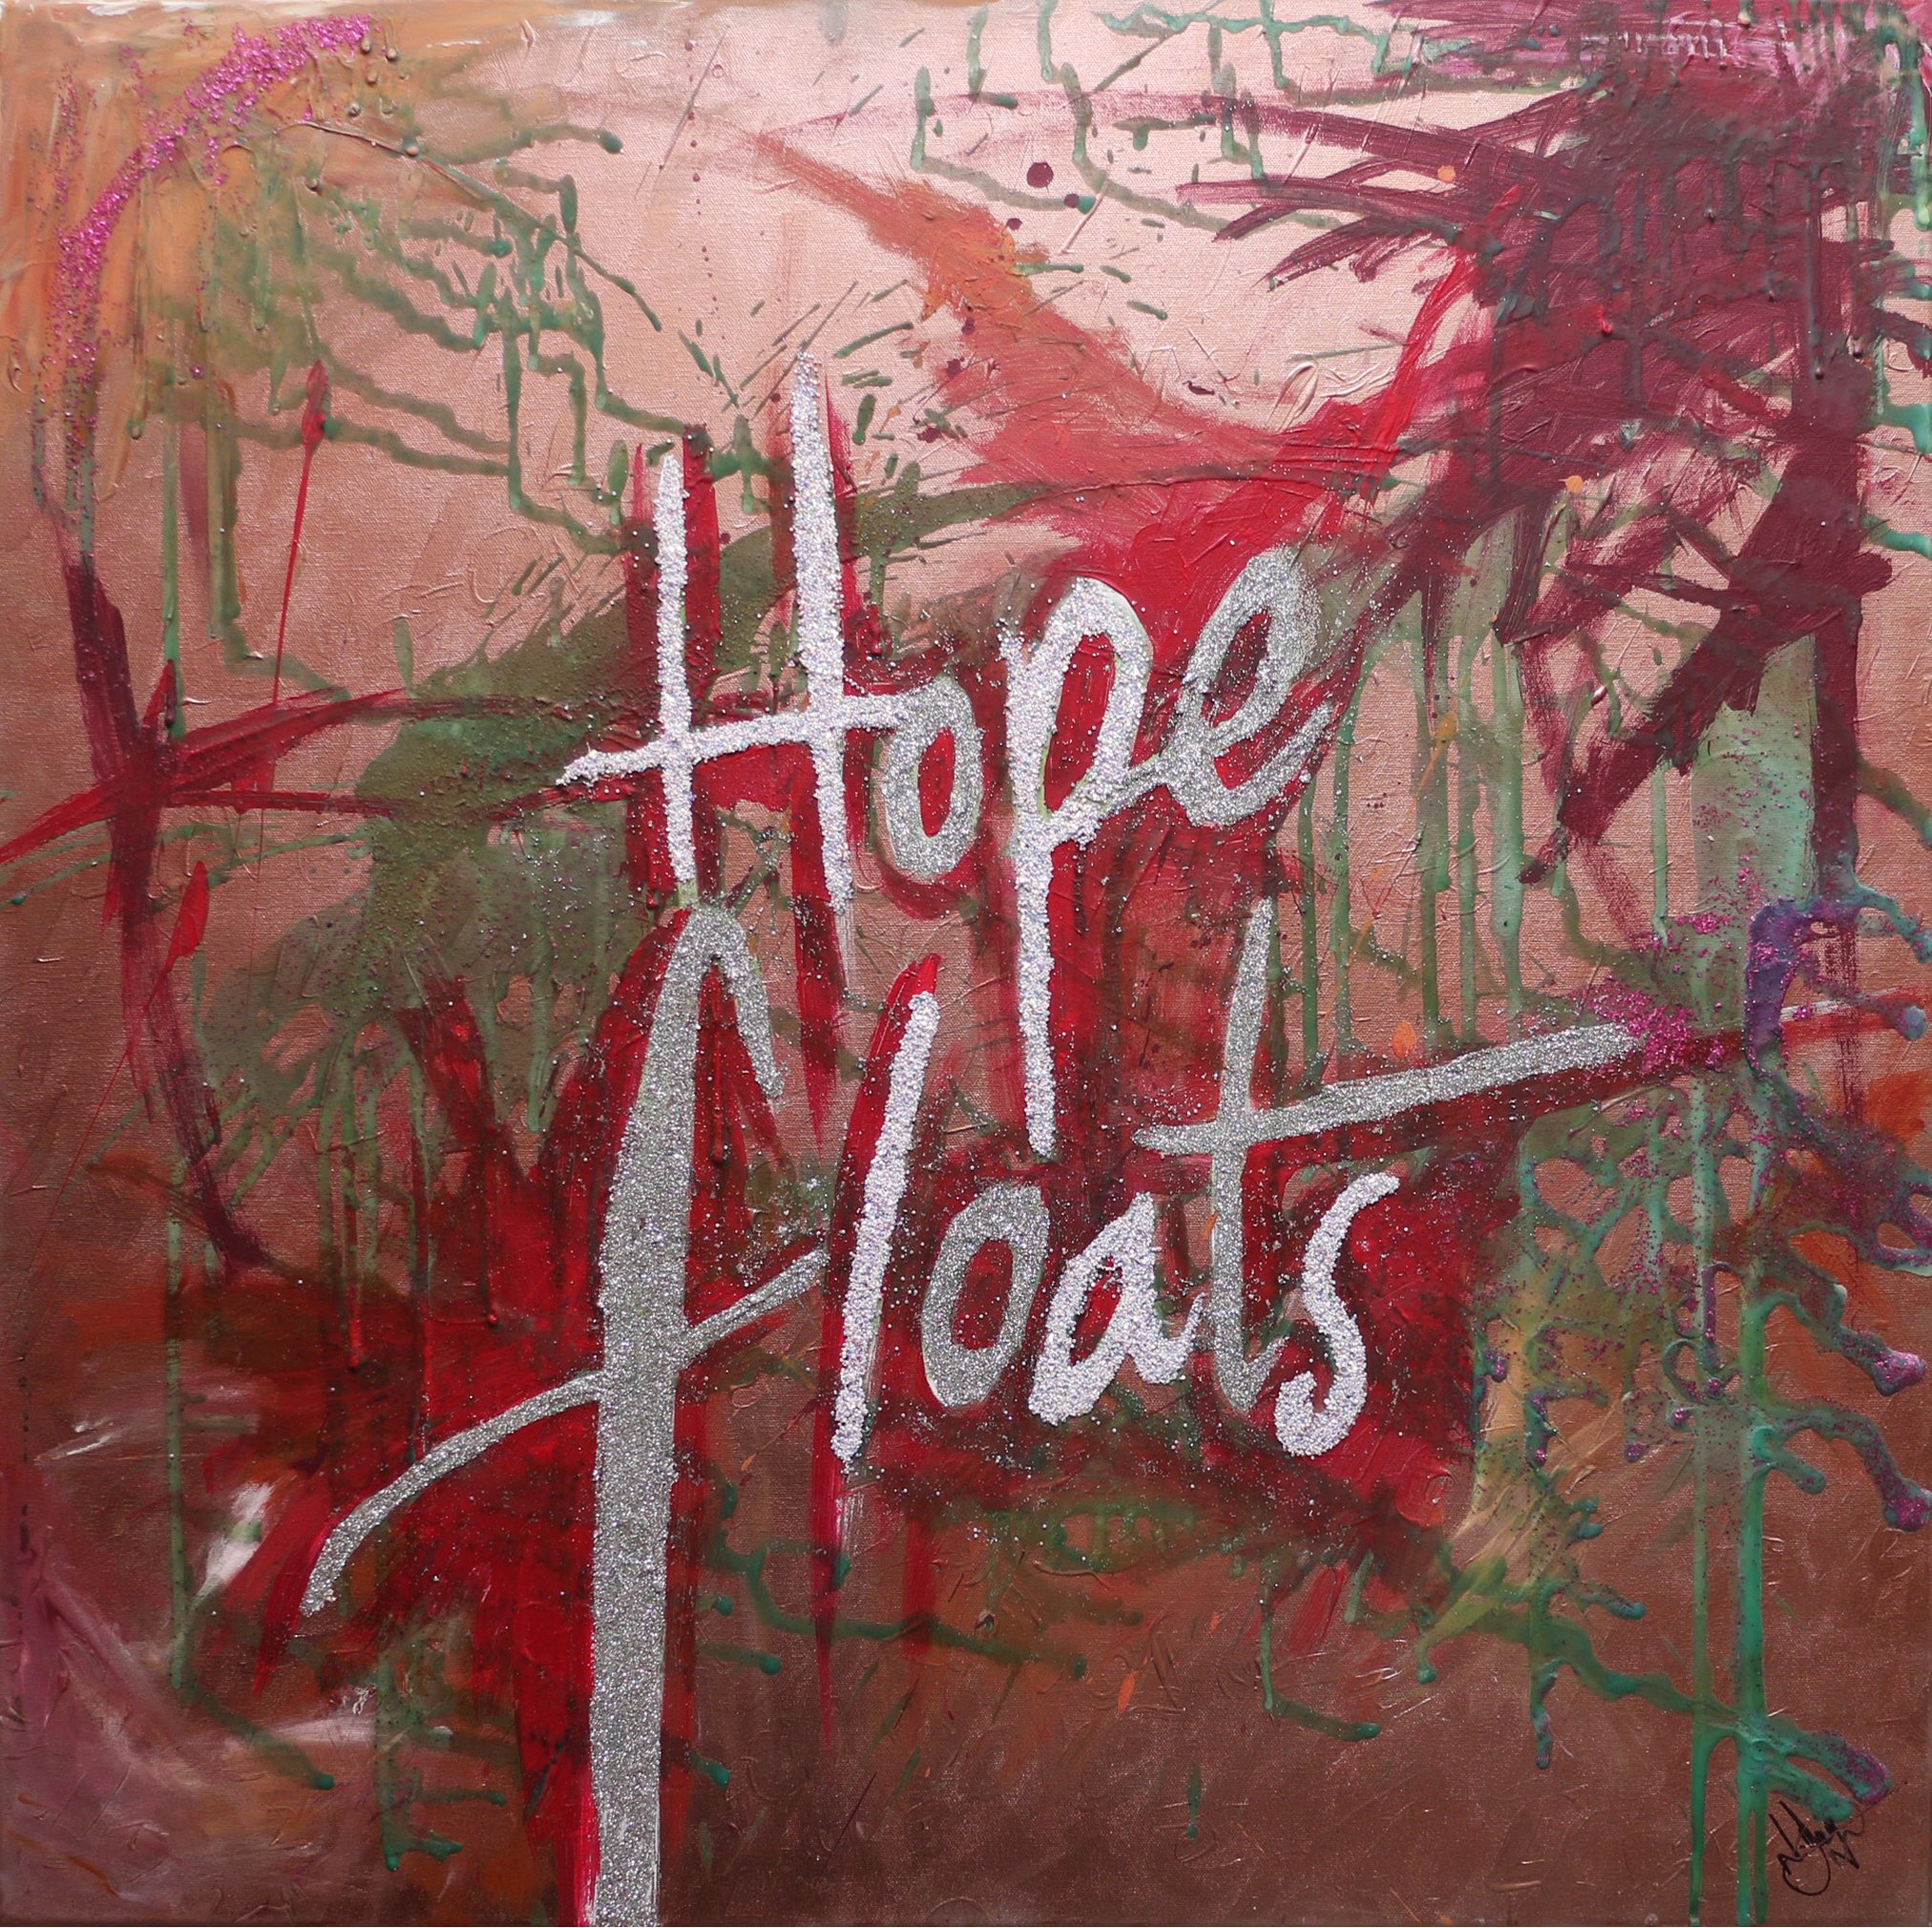 Hope Floats Natalie Daghestani Art Dubai